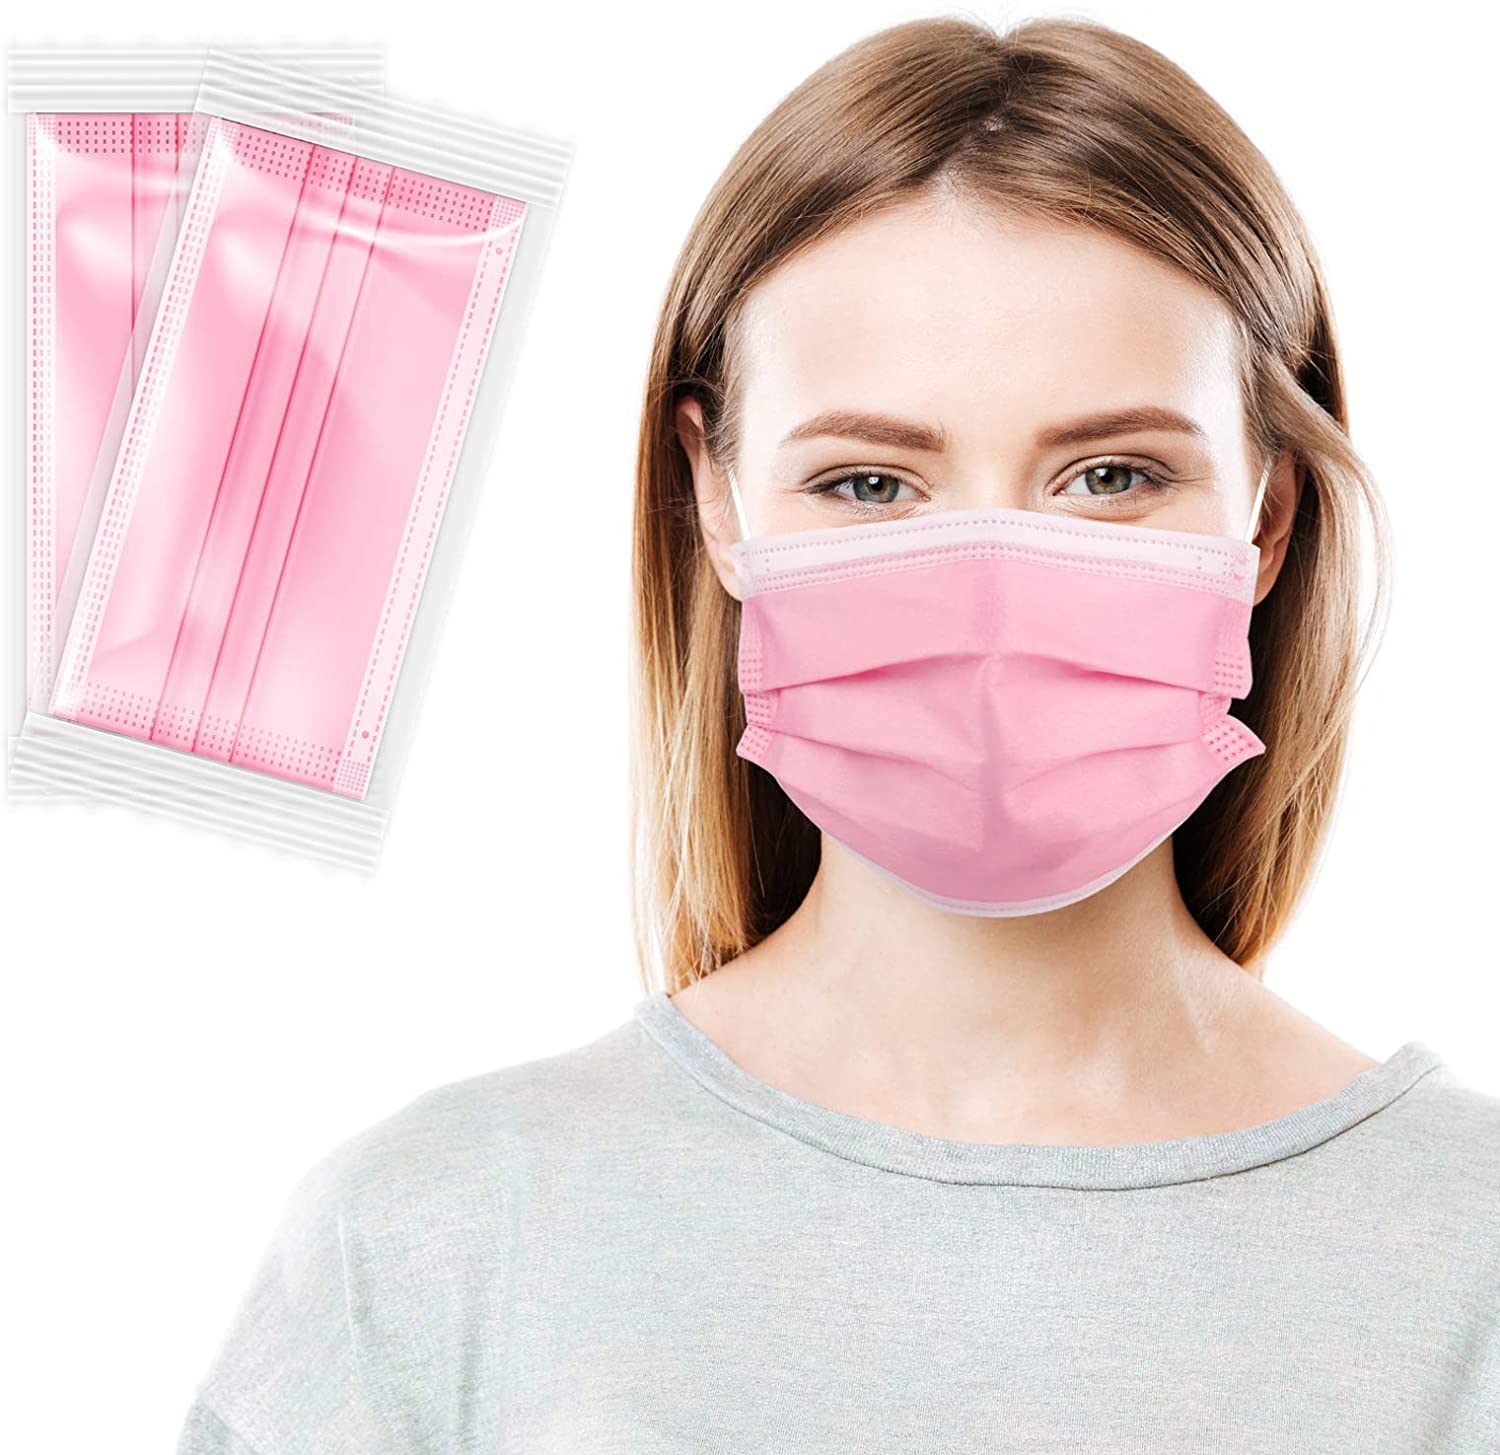 Disposable Face Mask Individually Wrapped Masks 3 Layers Breathable Face Cover with Soft Elastic Ear Loops for Men Women Indoor and Outdoor Activities, Blush Pink 20PCS